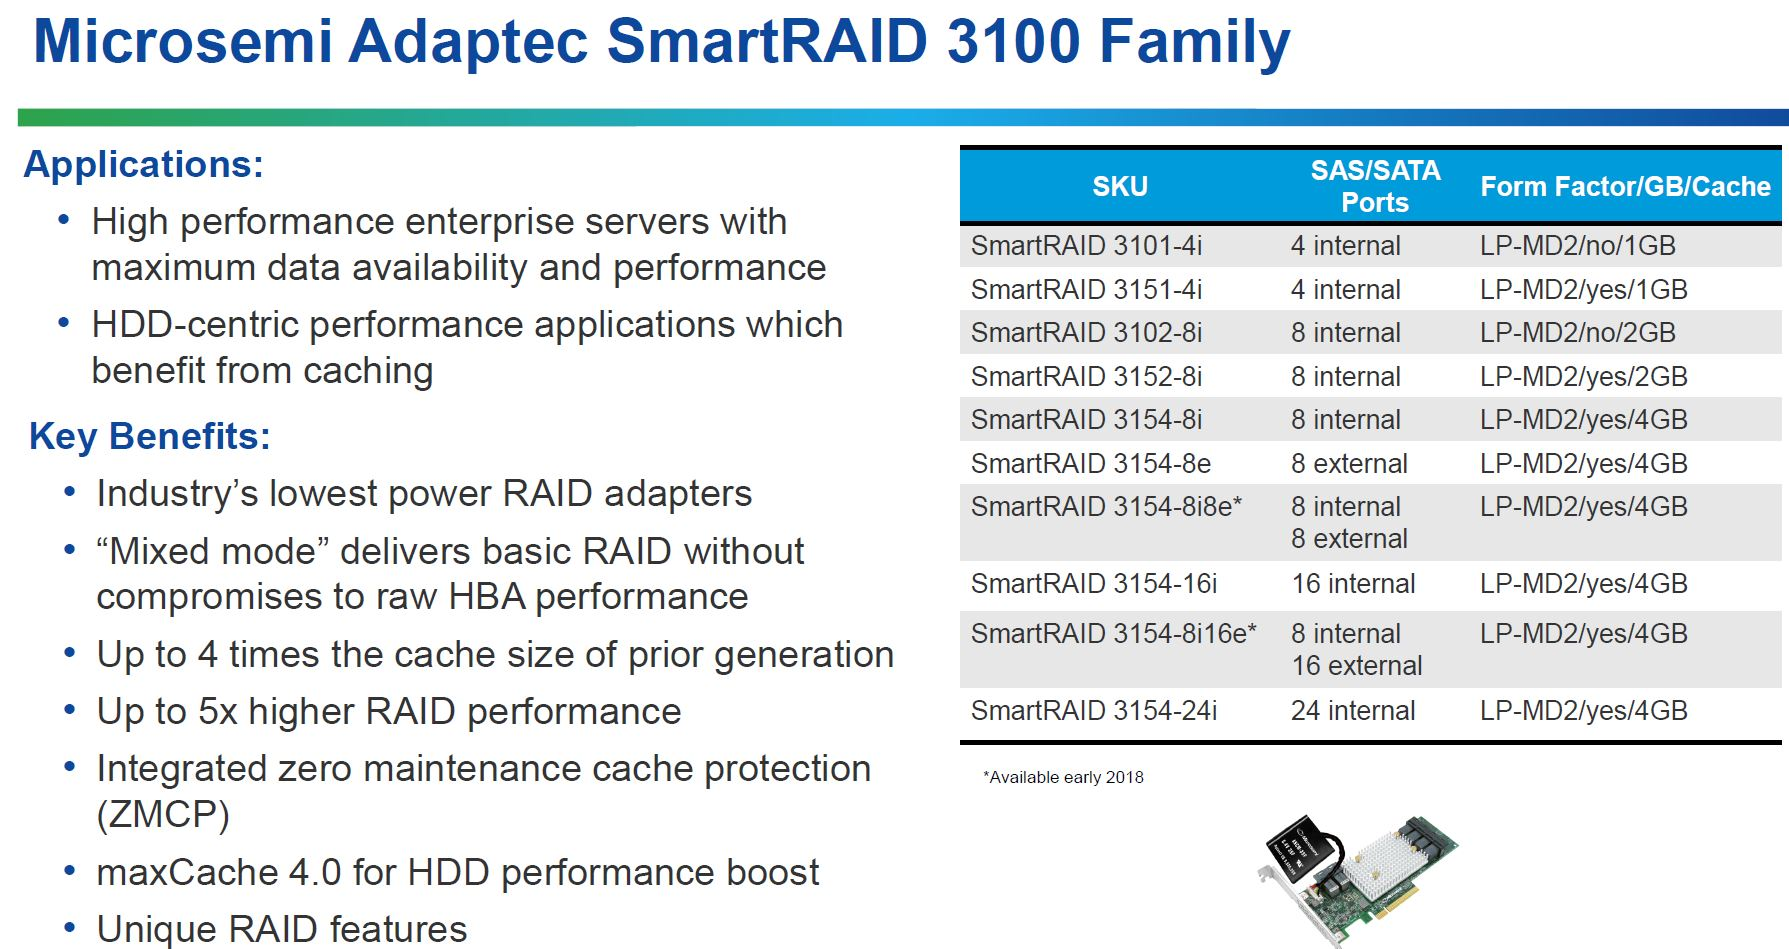 Microsemi Adaptec SmartRAID 3100 Family